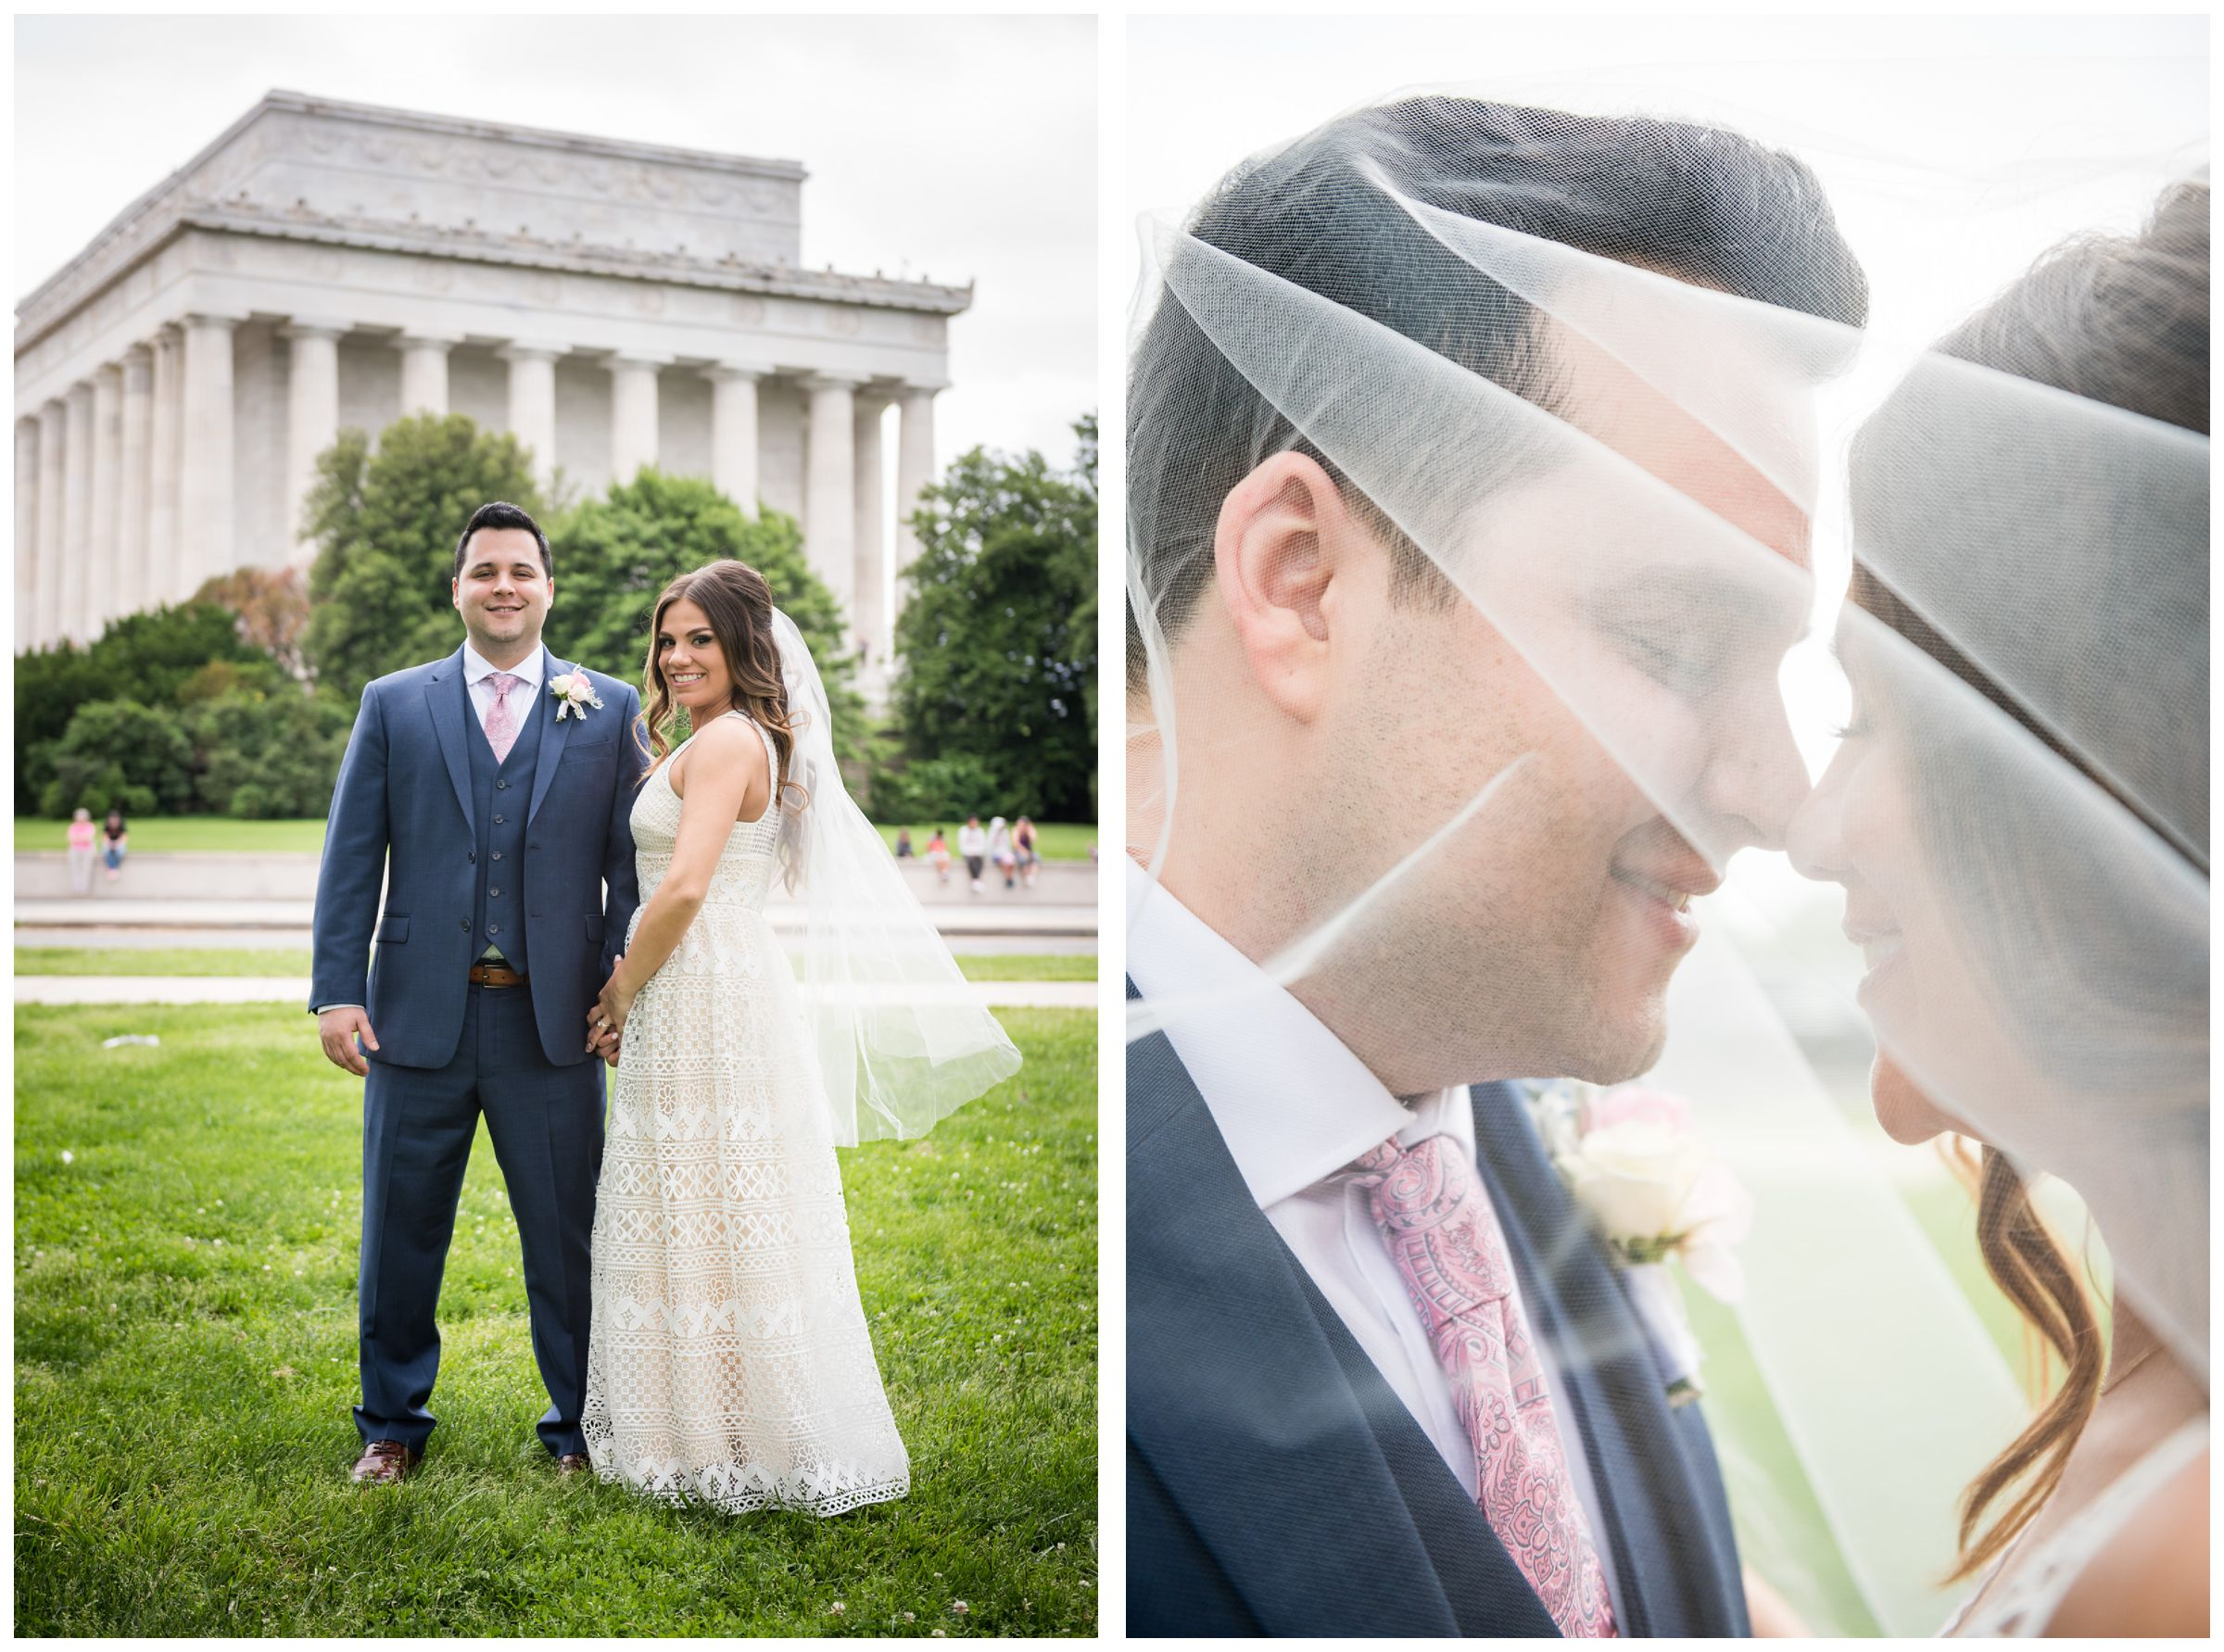 bride and groom in front of Lincoln Memorial during DC monument wedding day